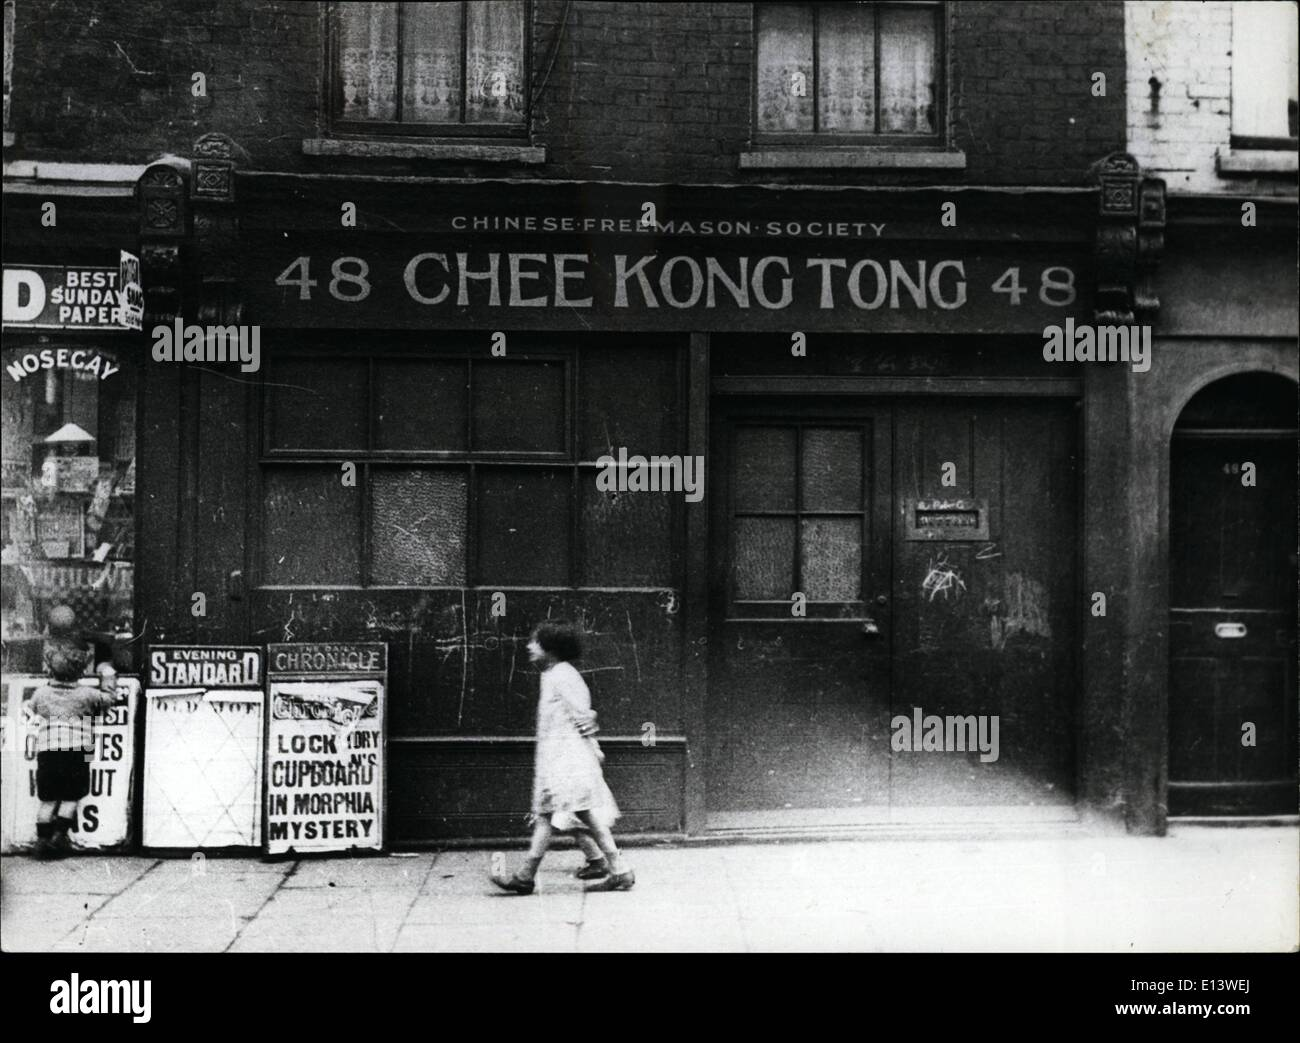 Mar. 27, 2012 - London in the Twenties; Chinese Freemason Society in Limehouse. APRESS - Stock Image